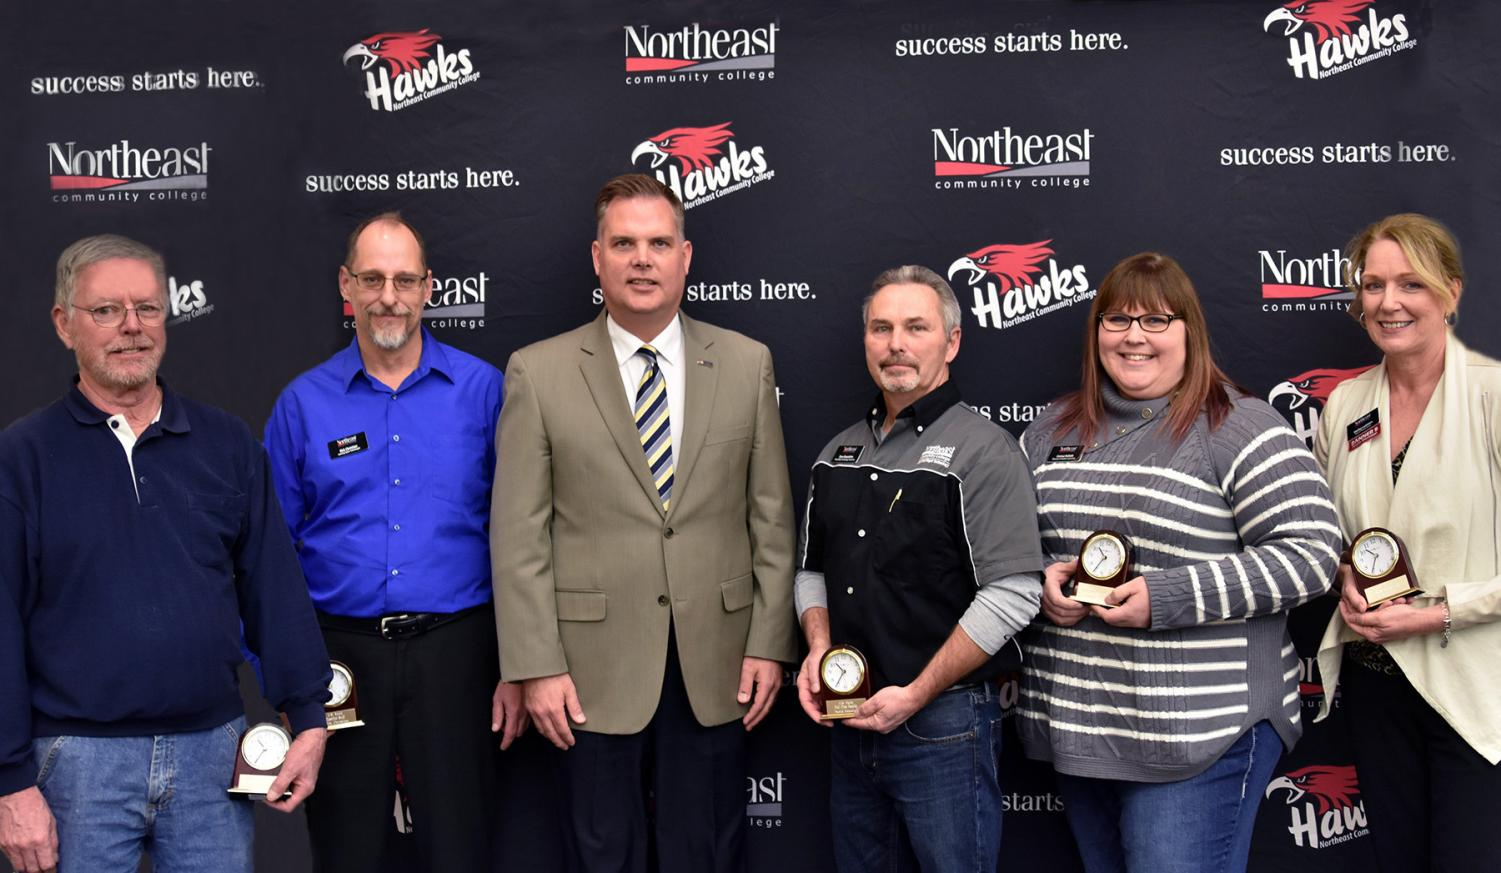 PHOTO ID: (from left) Don Burke, Kirk Christian, Troy Strom, Dave Beaudette, Carissa Kollath, and Shelley Lammers. (Courtesy Northeast Community College)